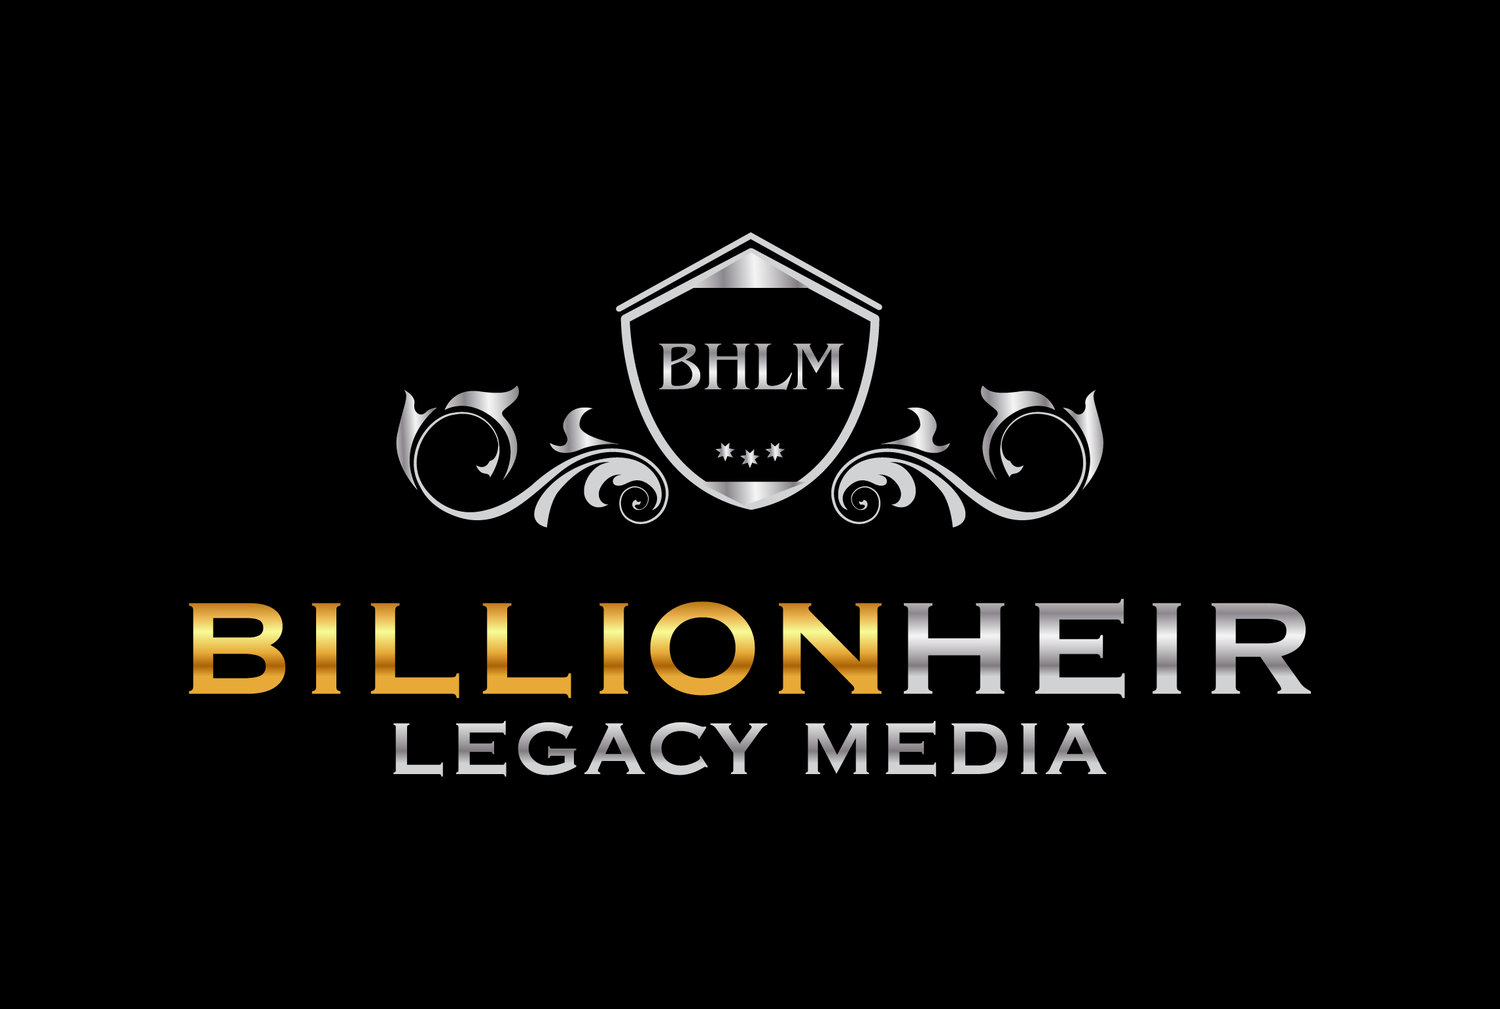 BillionHeir Legacy Media